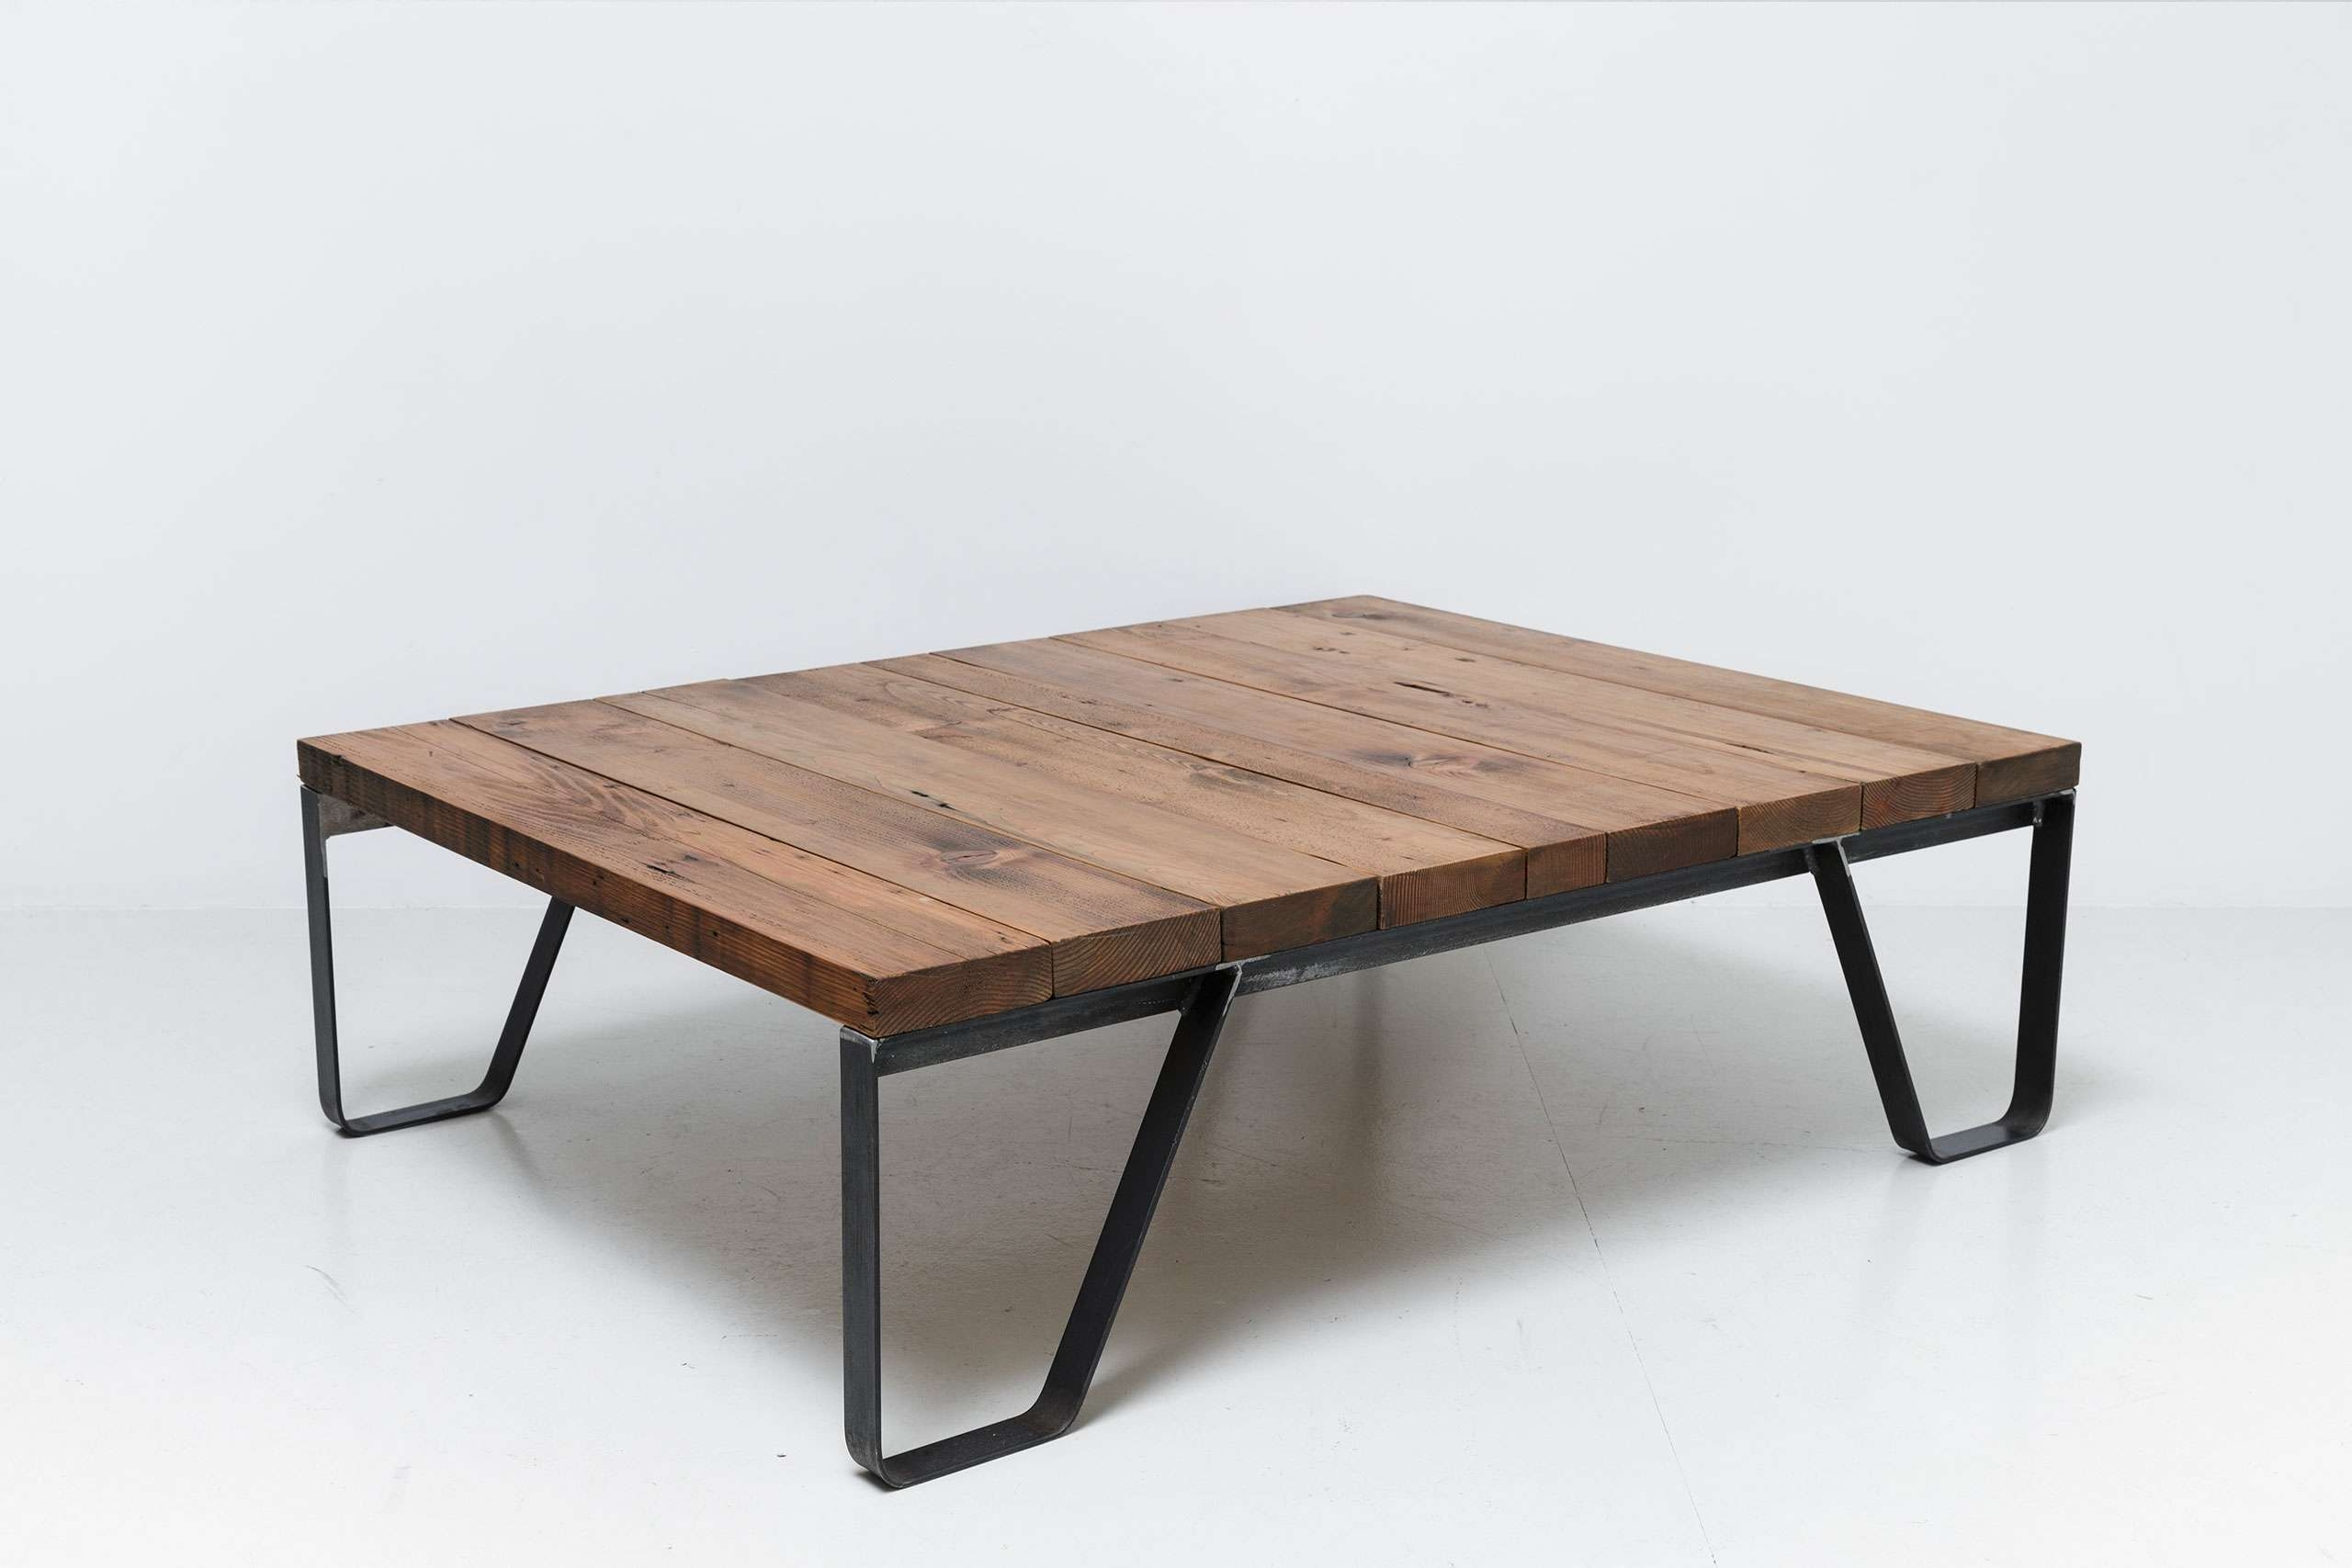 Coffee Table, Hand Made Coffee Table, Industrial Table, Industrial Within Recent Industrial Coffee Tables (View 4 of 20)